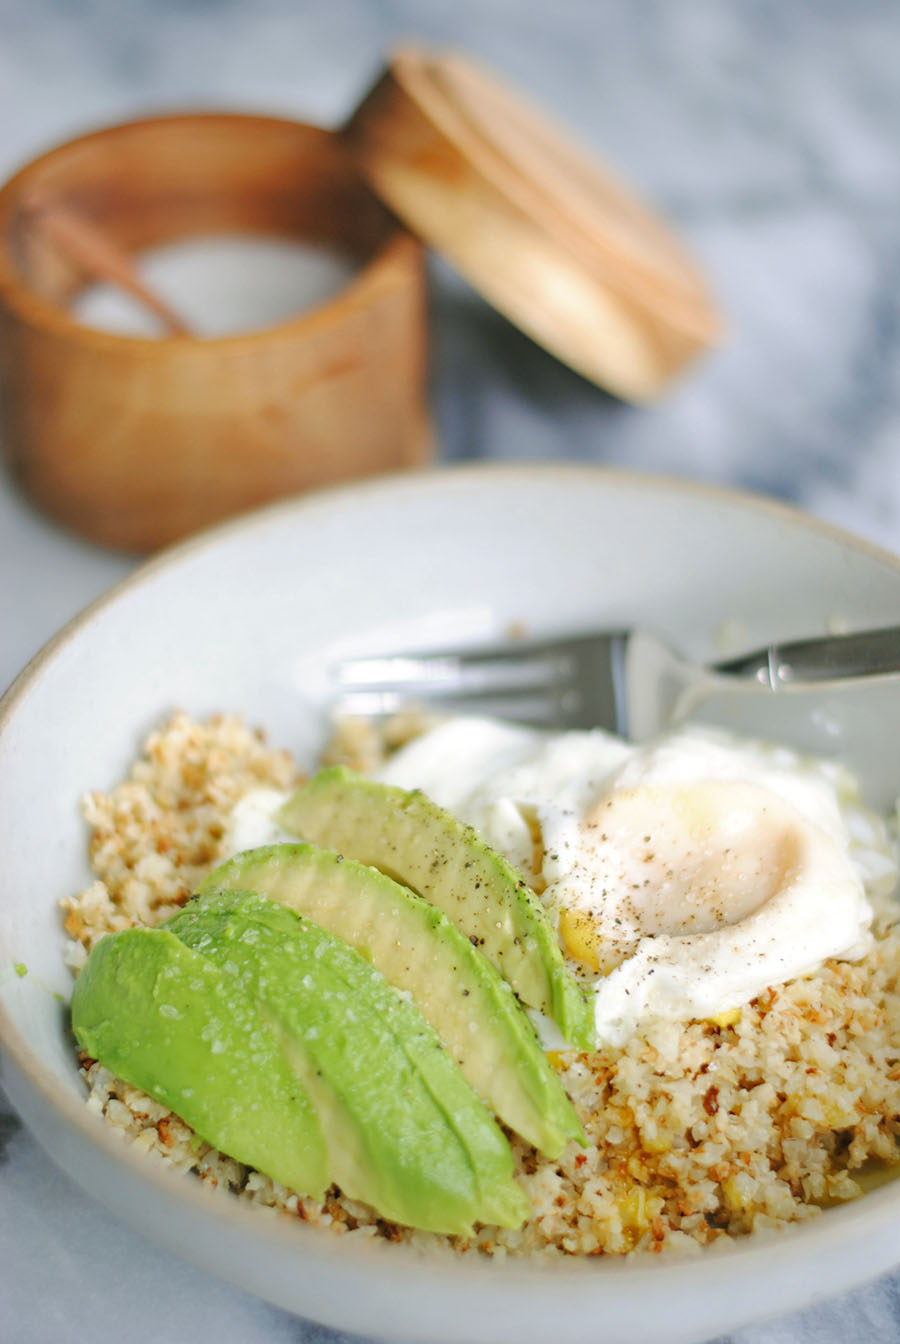 3 Warm Breakfasts to Boost Your Energy This Winter